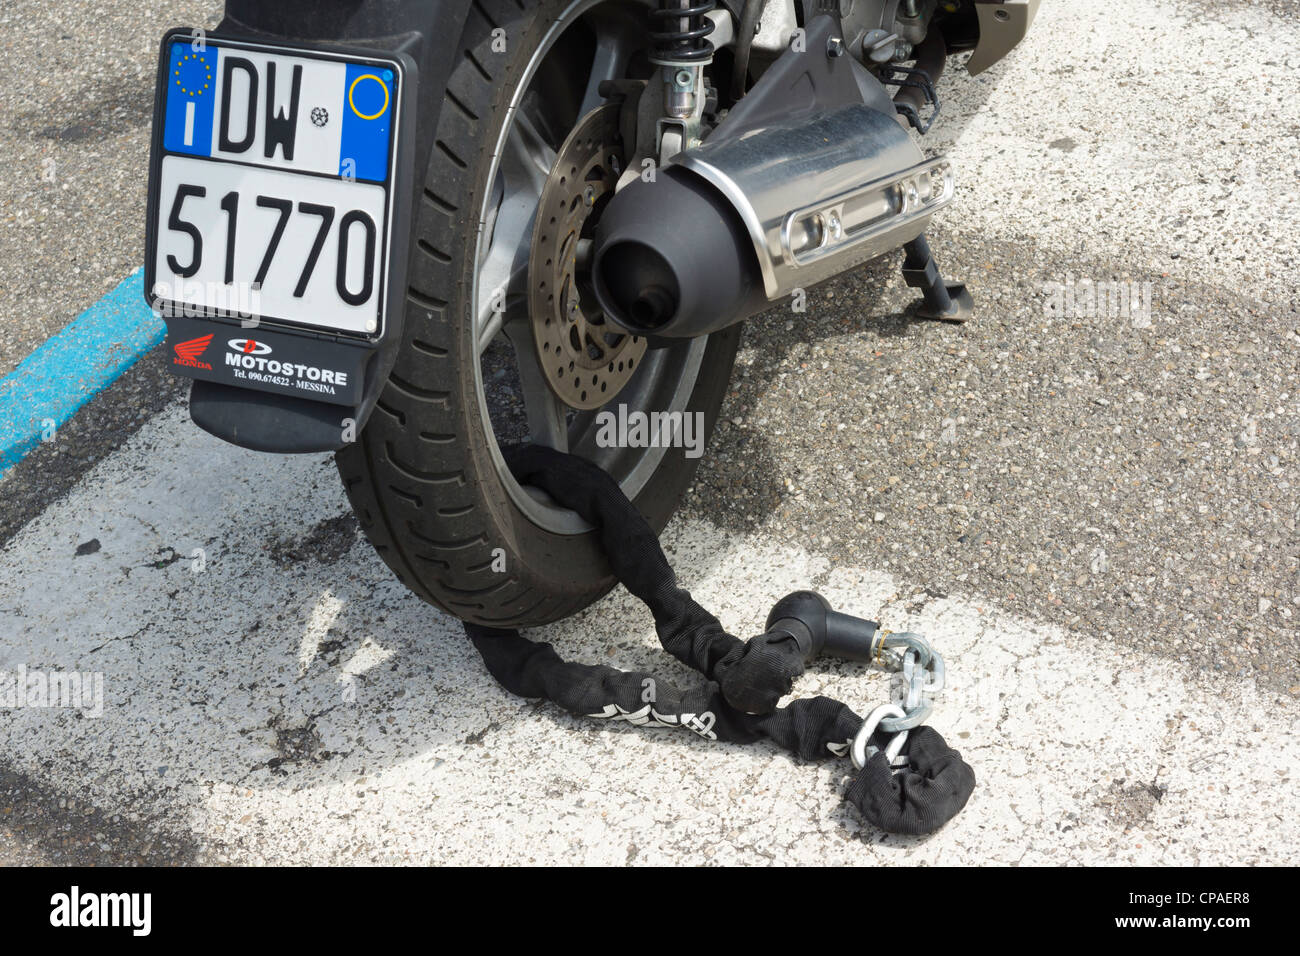 Messina, Sicily, Italy - local commuting, motorbikes or scooters. Anti-theft chain on rear wheel. - Stock Image